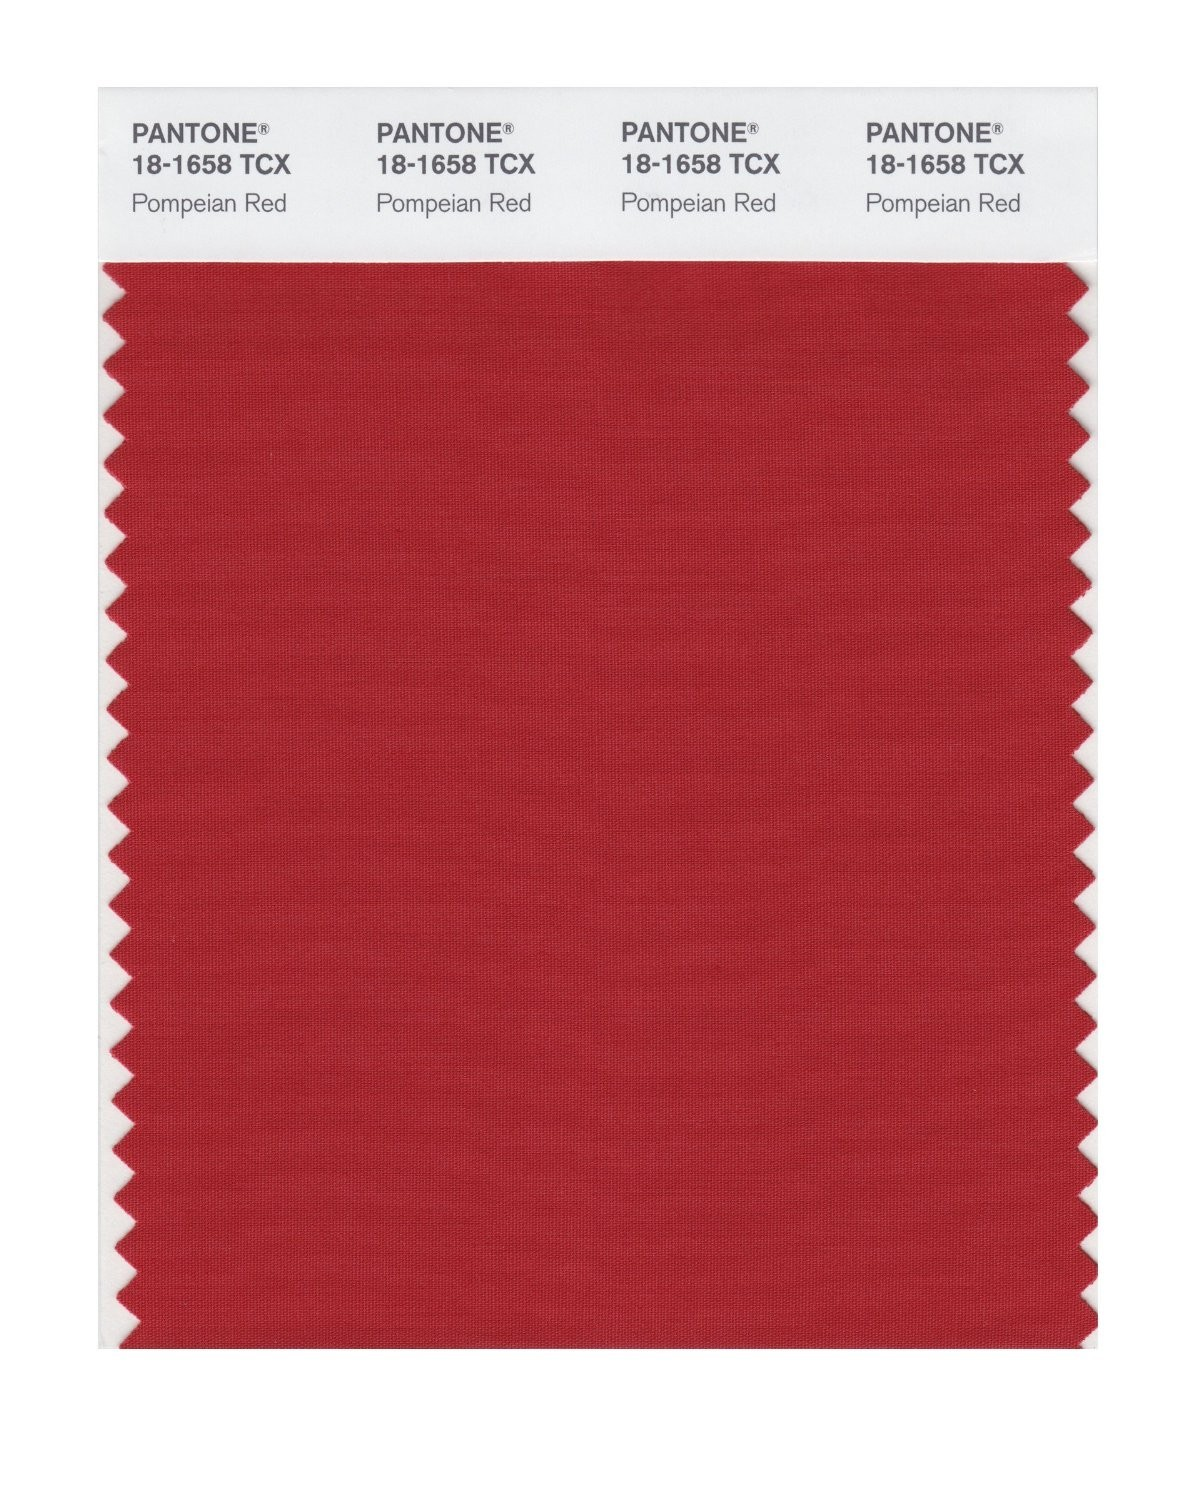 Pantone 18-1658 TCX Swatch Card Pompeian Red